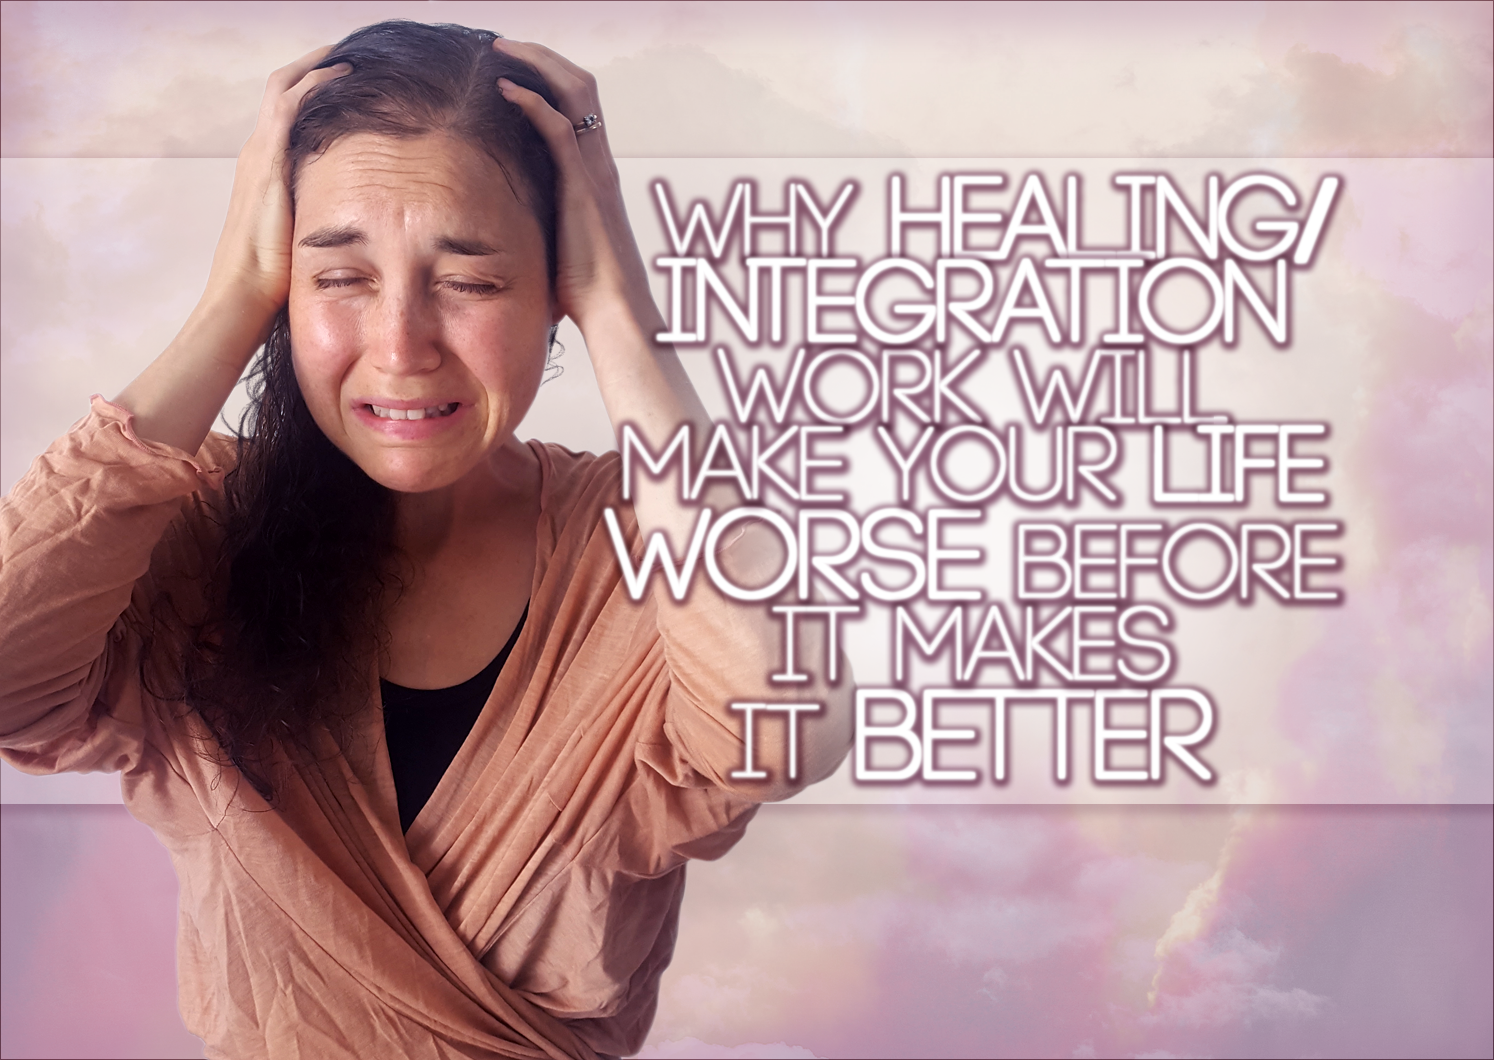 Why Healing/Integration Work Is GOING To Make Your Life WORSE Before It Makes It Better: